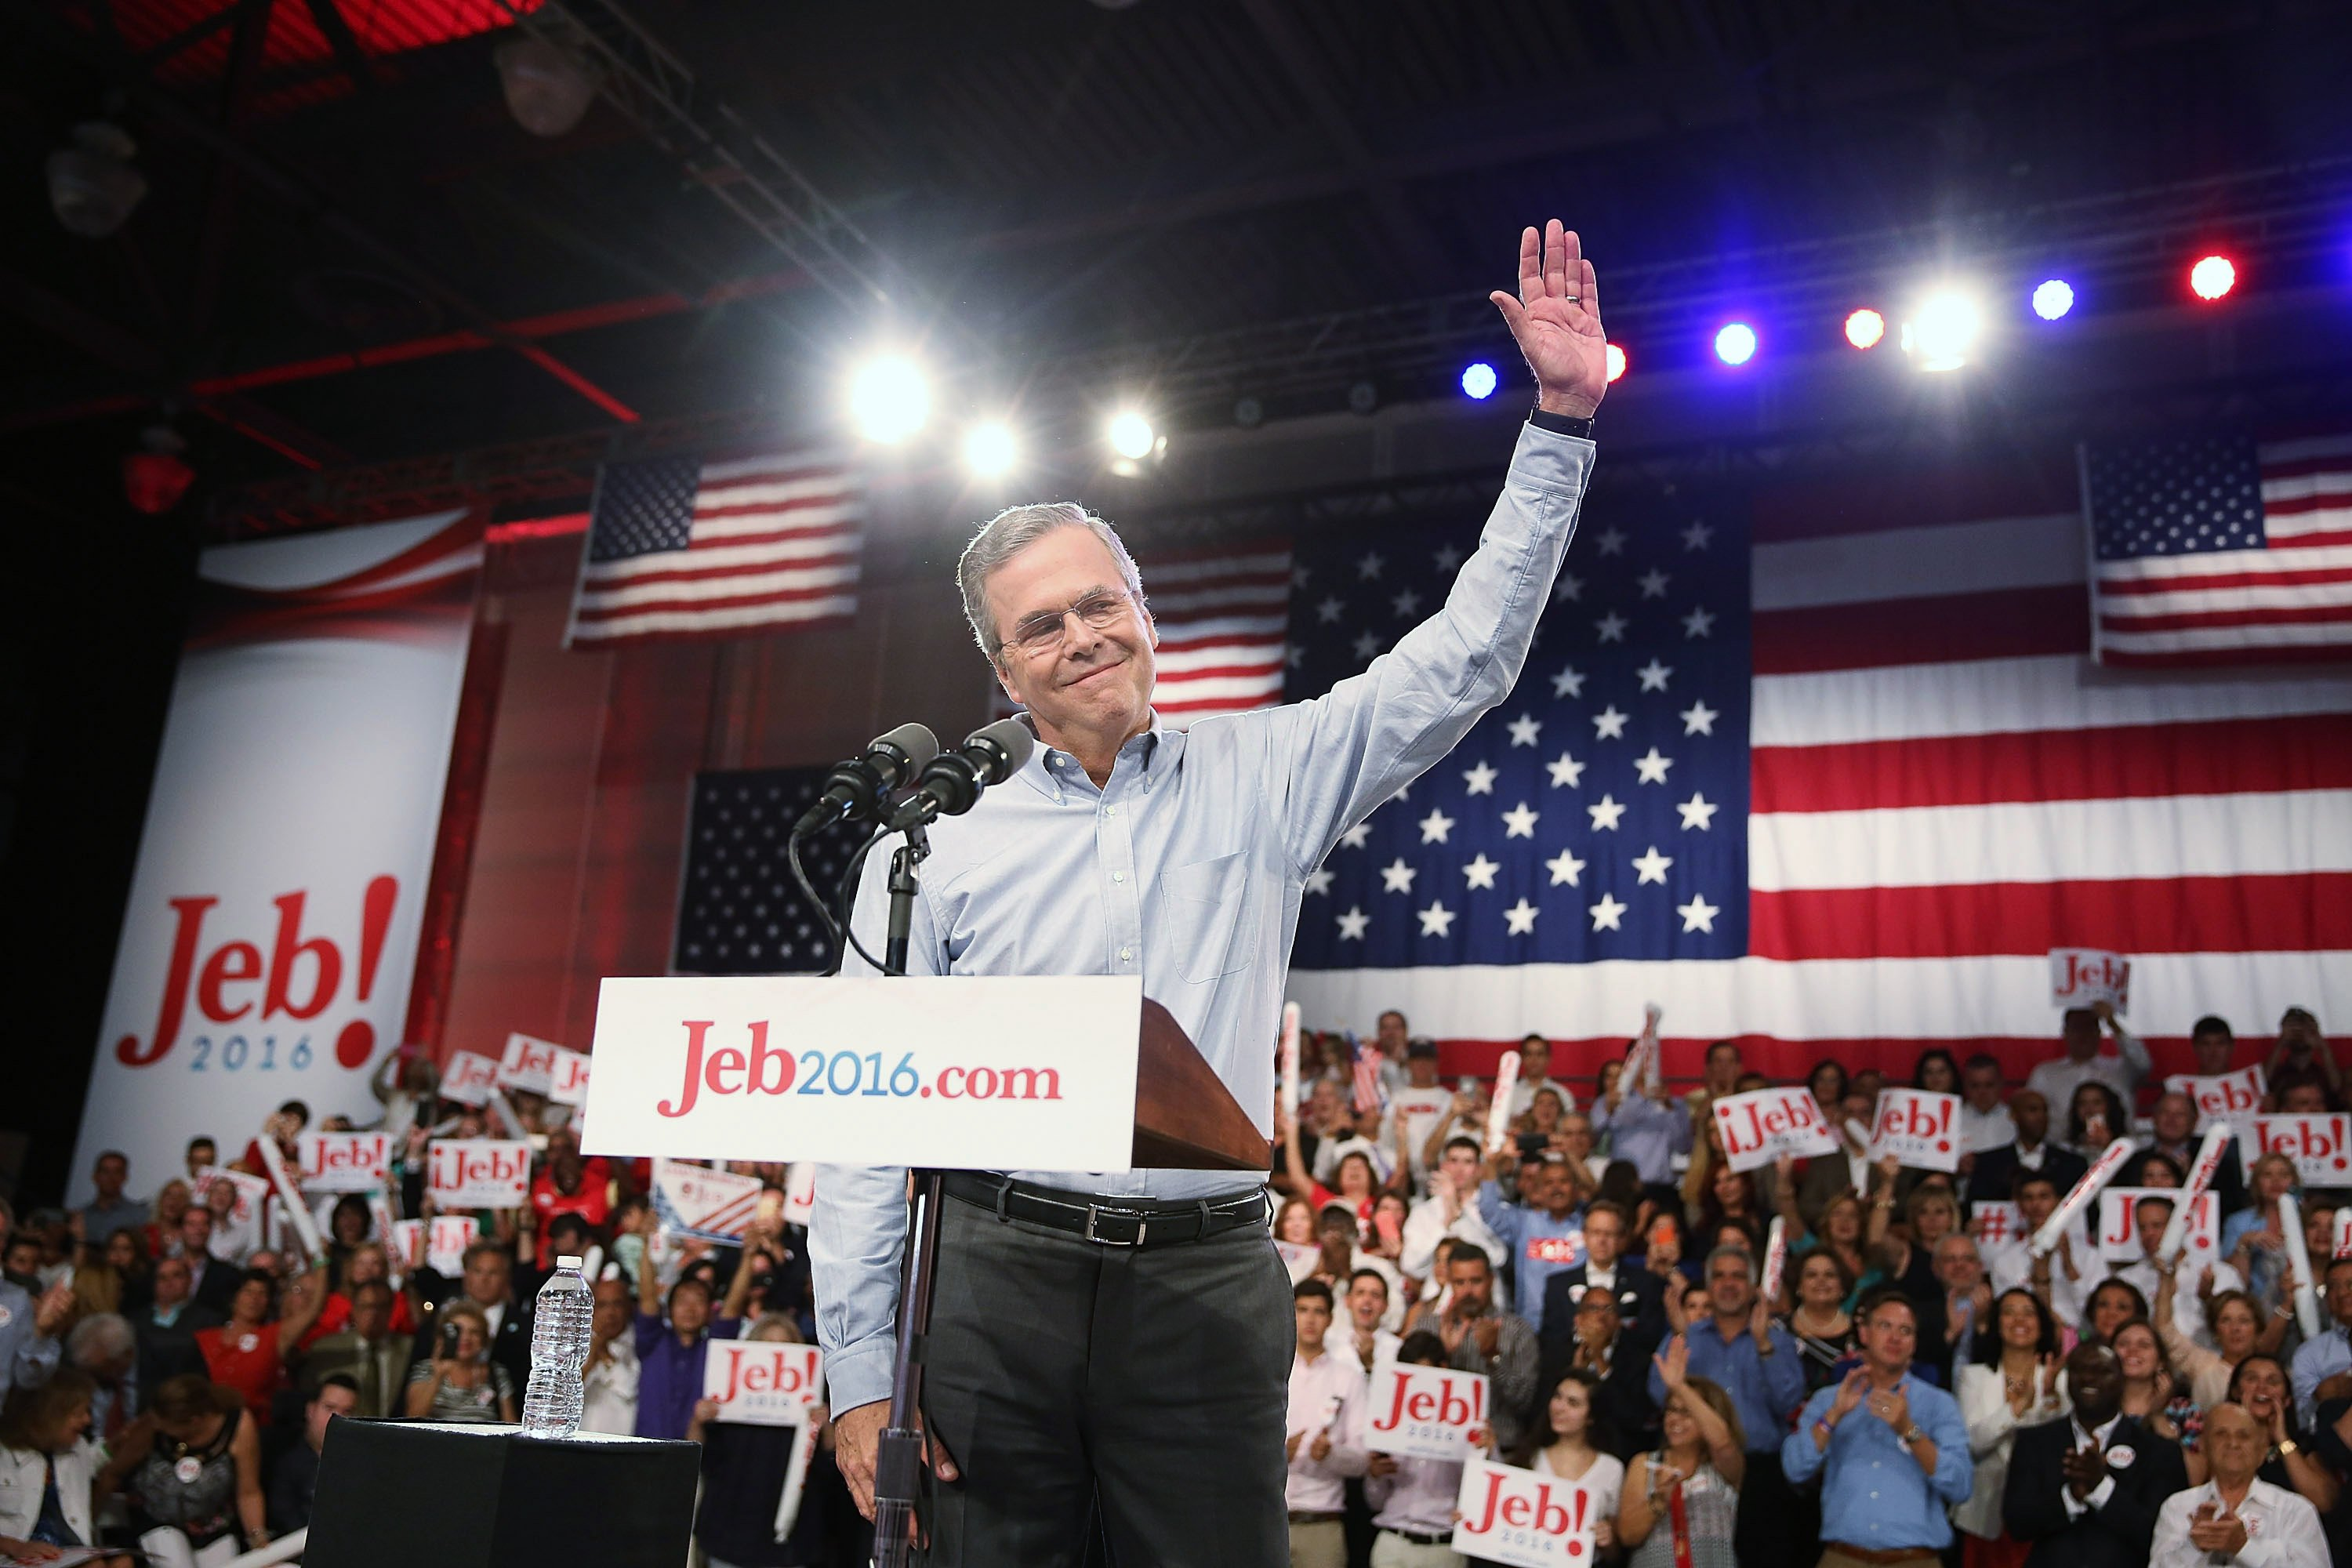 Former Florida Governor Jeb Bush waves on stage as he announces his candidacy for the Republican presidential nomination during an event at Miami-Dade College - Kendall Campus in Miami on June 15 , 2015.